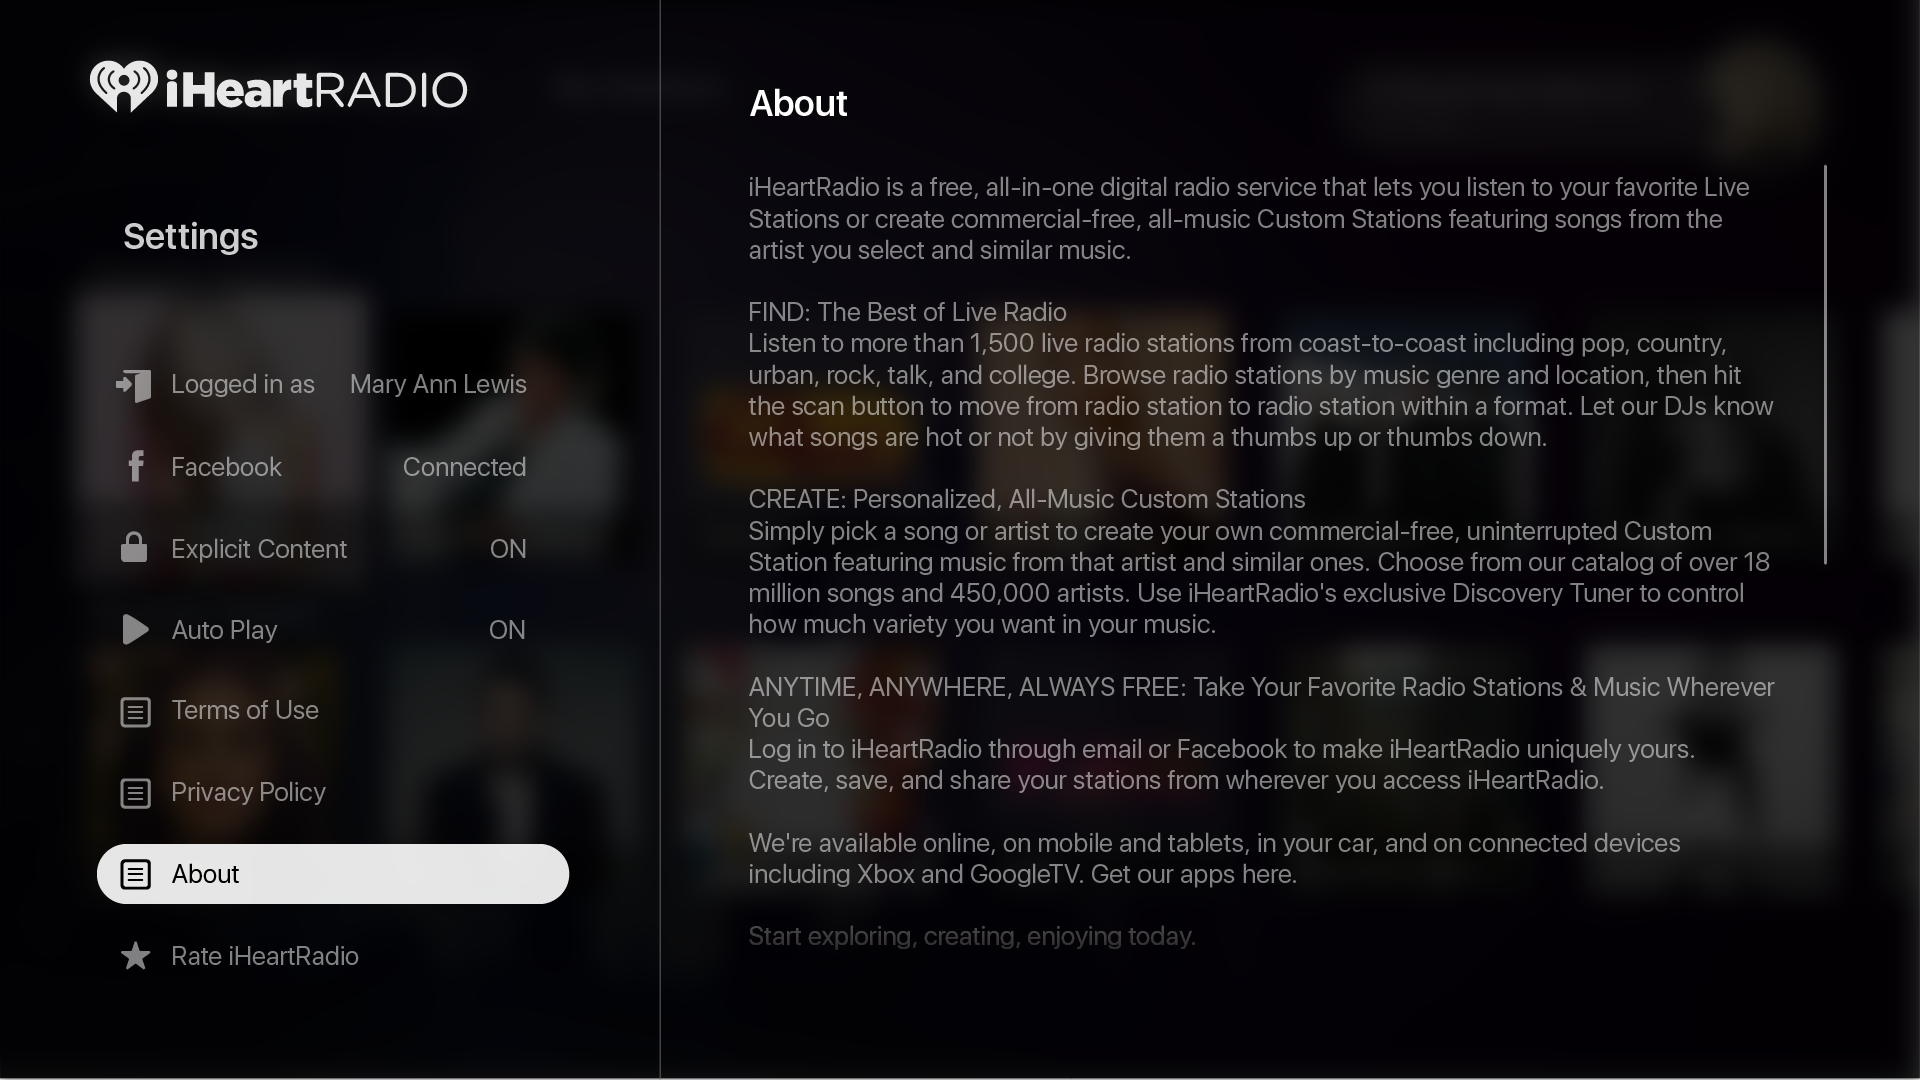 iHR_APPLETV_settings_v2_12-ABOUT.png